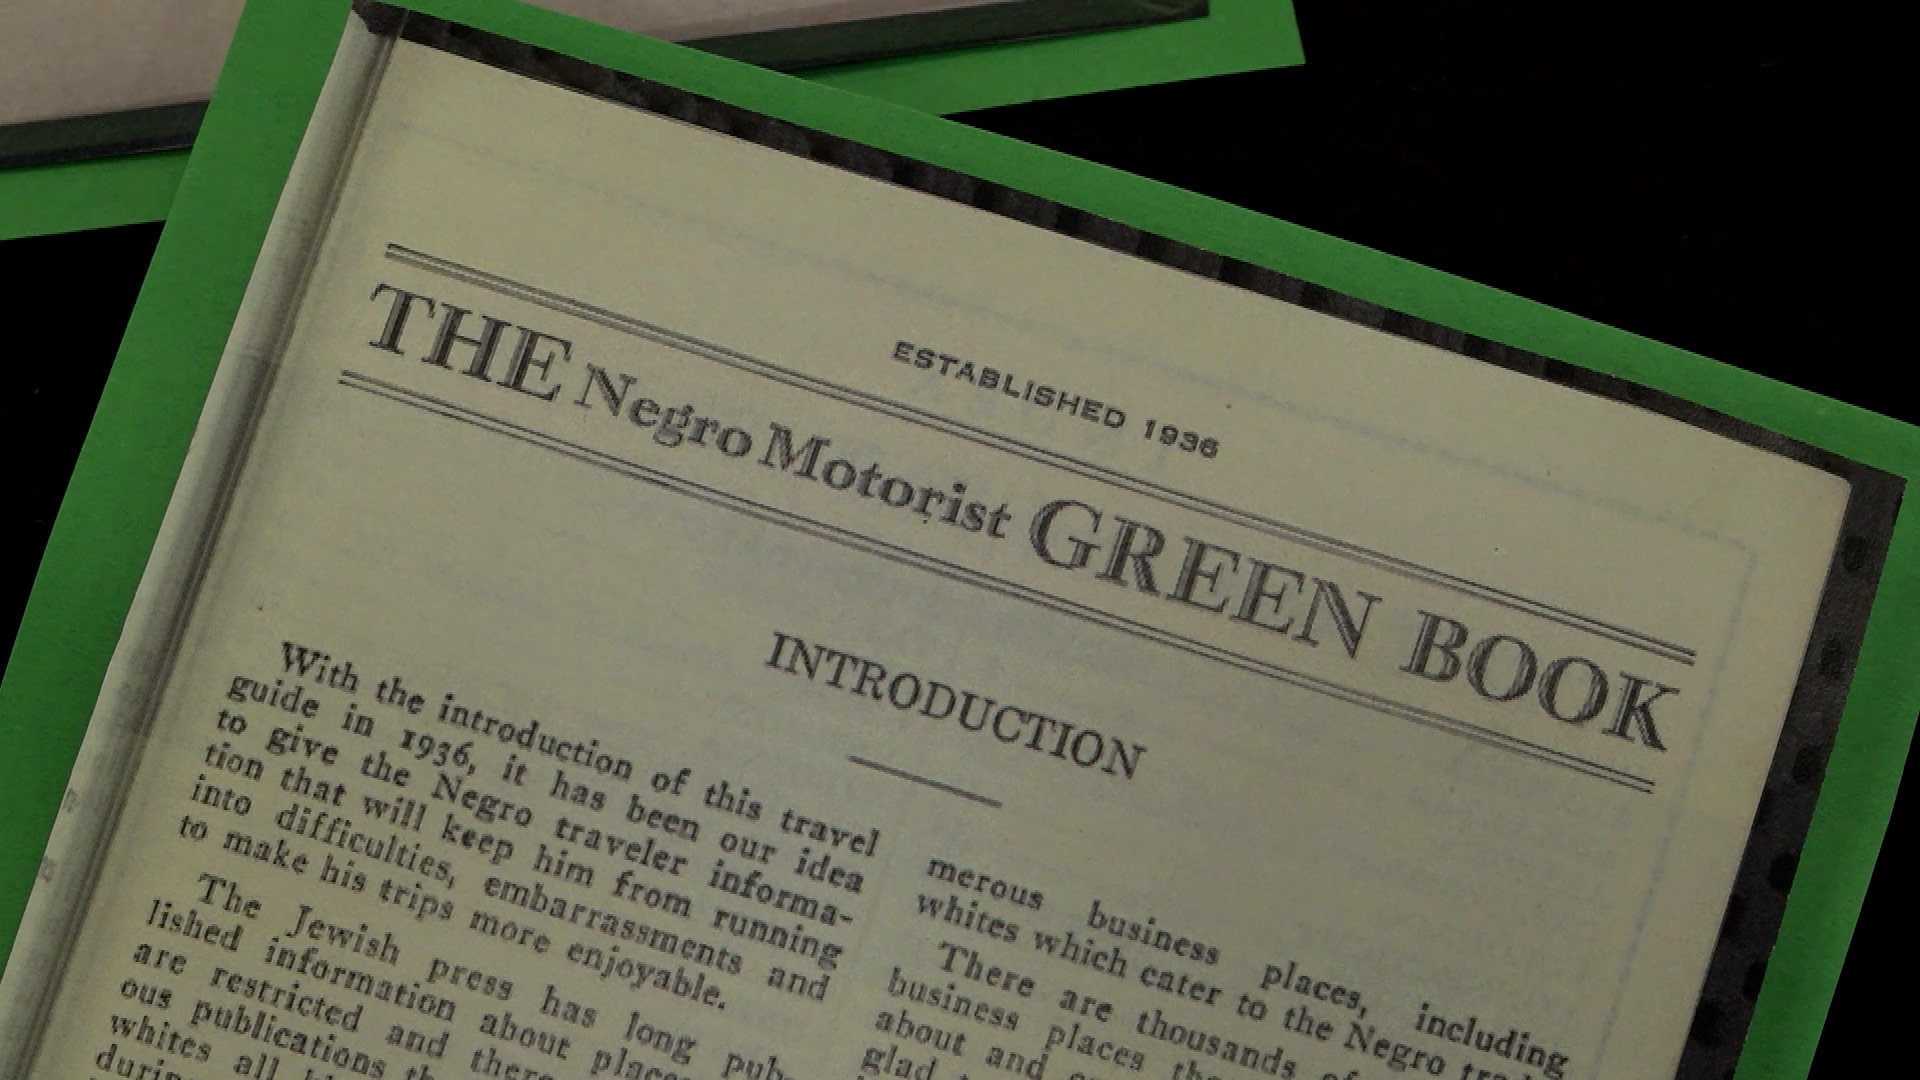 The Green Book Guide to Travel During Segregation